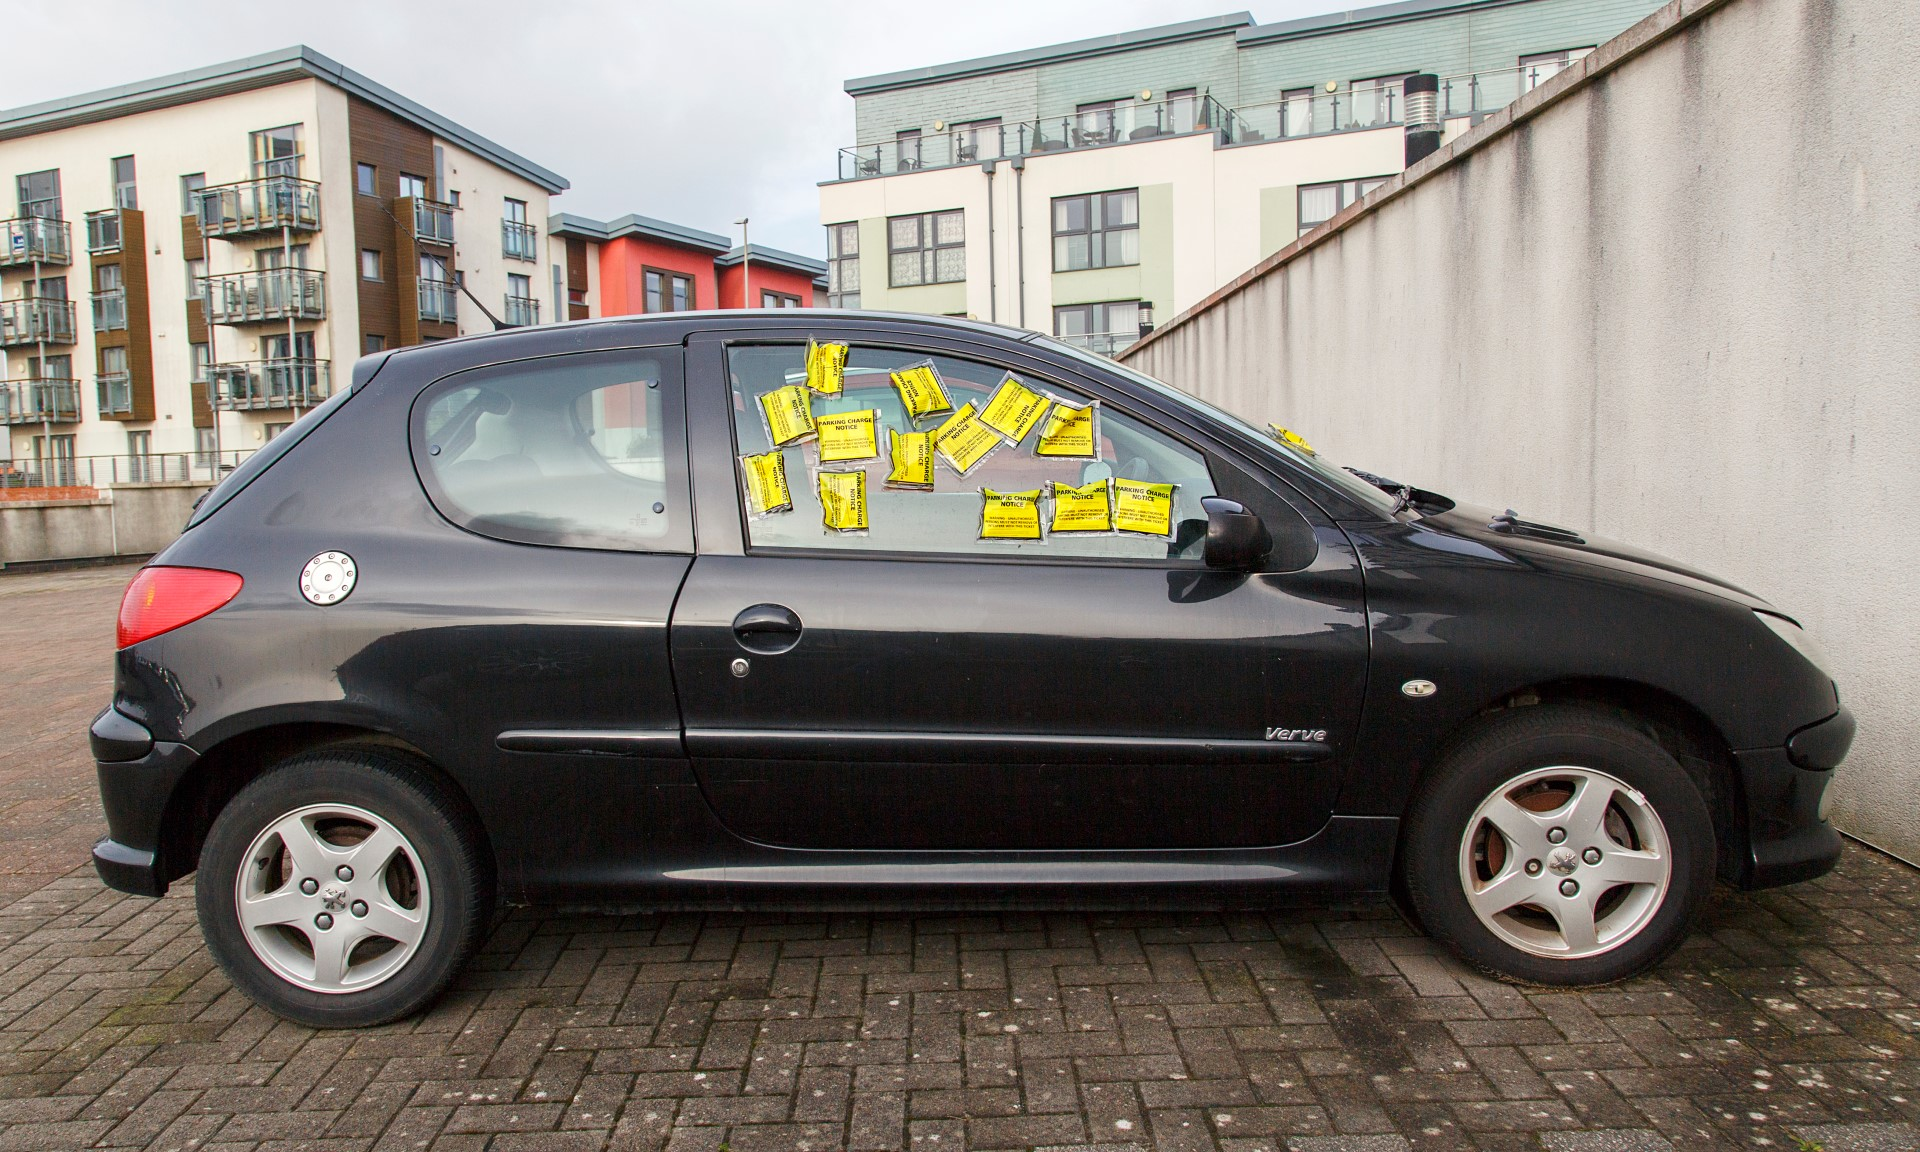 Parking tickets surge: how to appeal one – Which? News